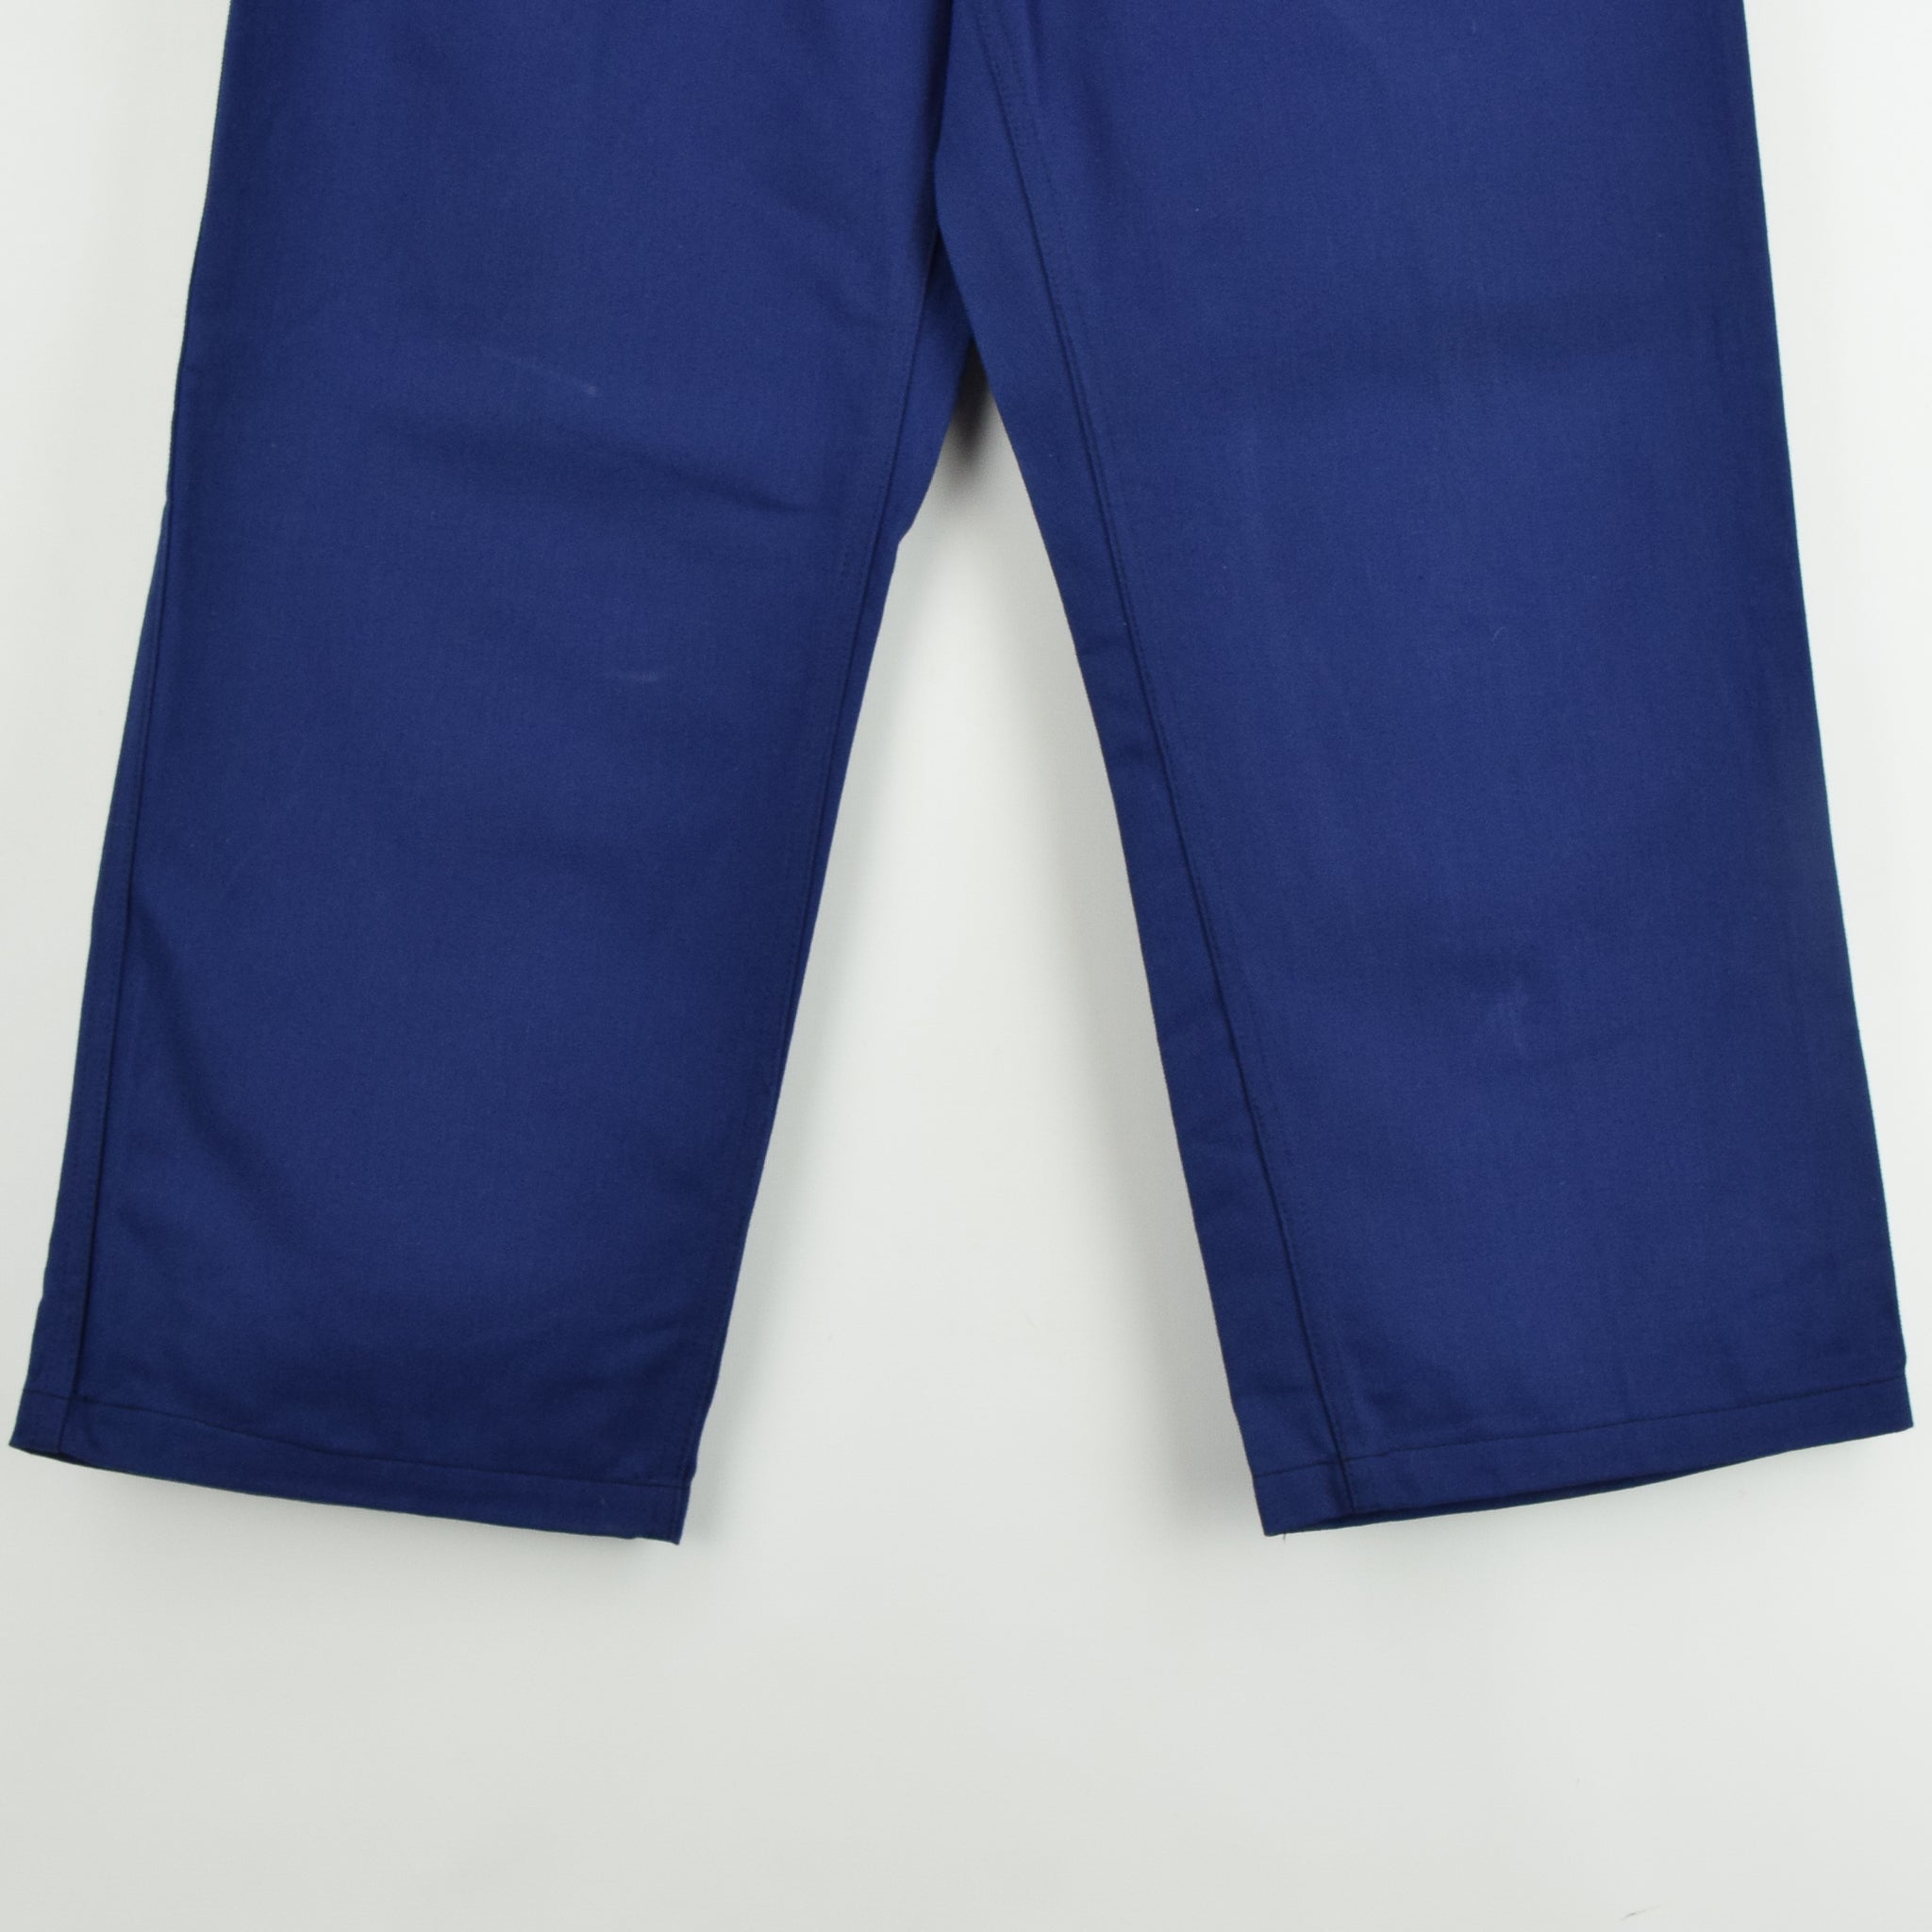 Vintage Workwear Blue French Style Work Utility Trousers Italy Made 32 W 25 L hem